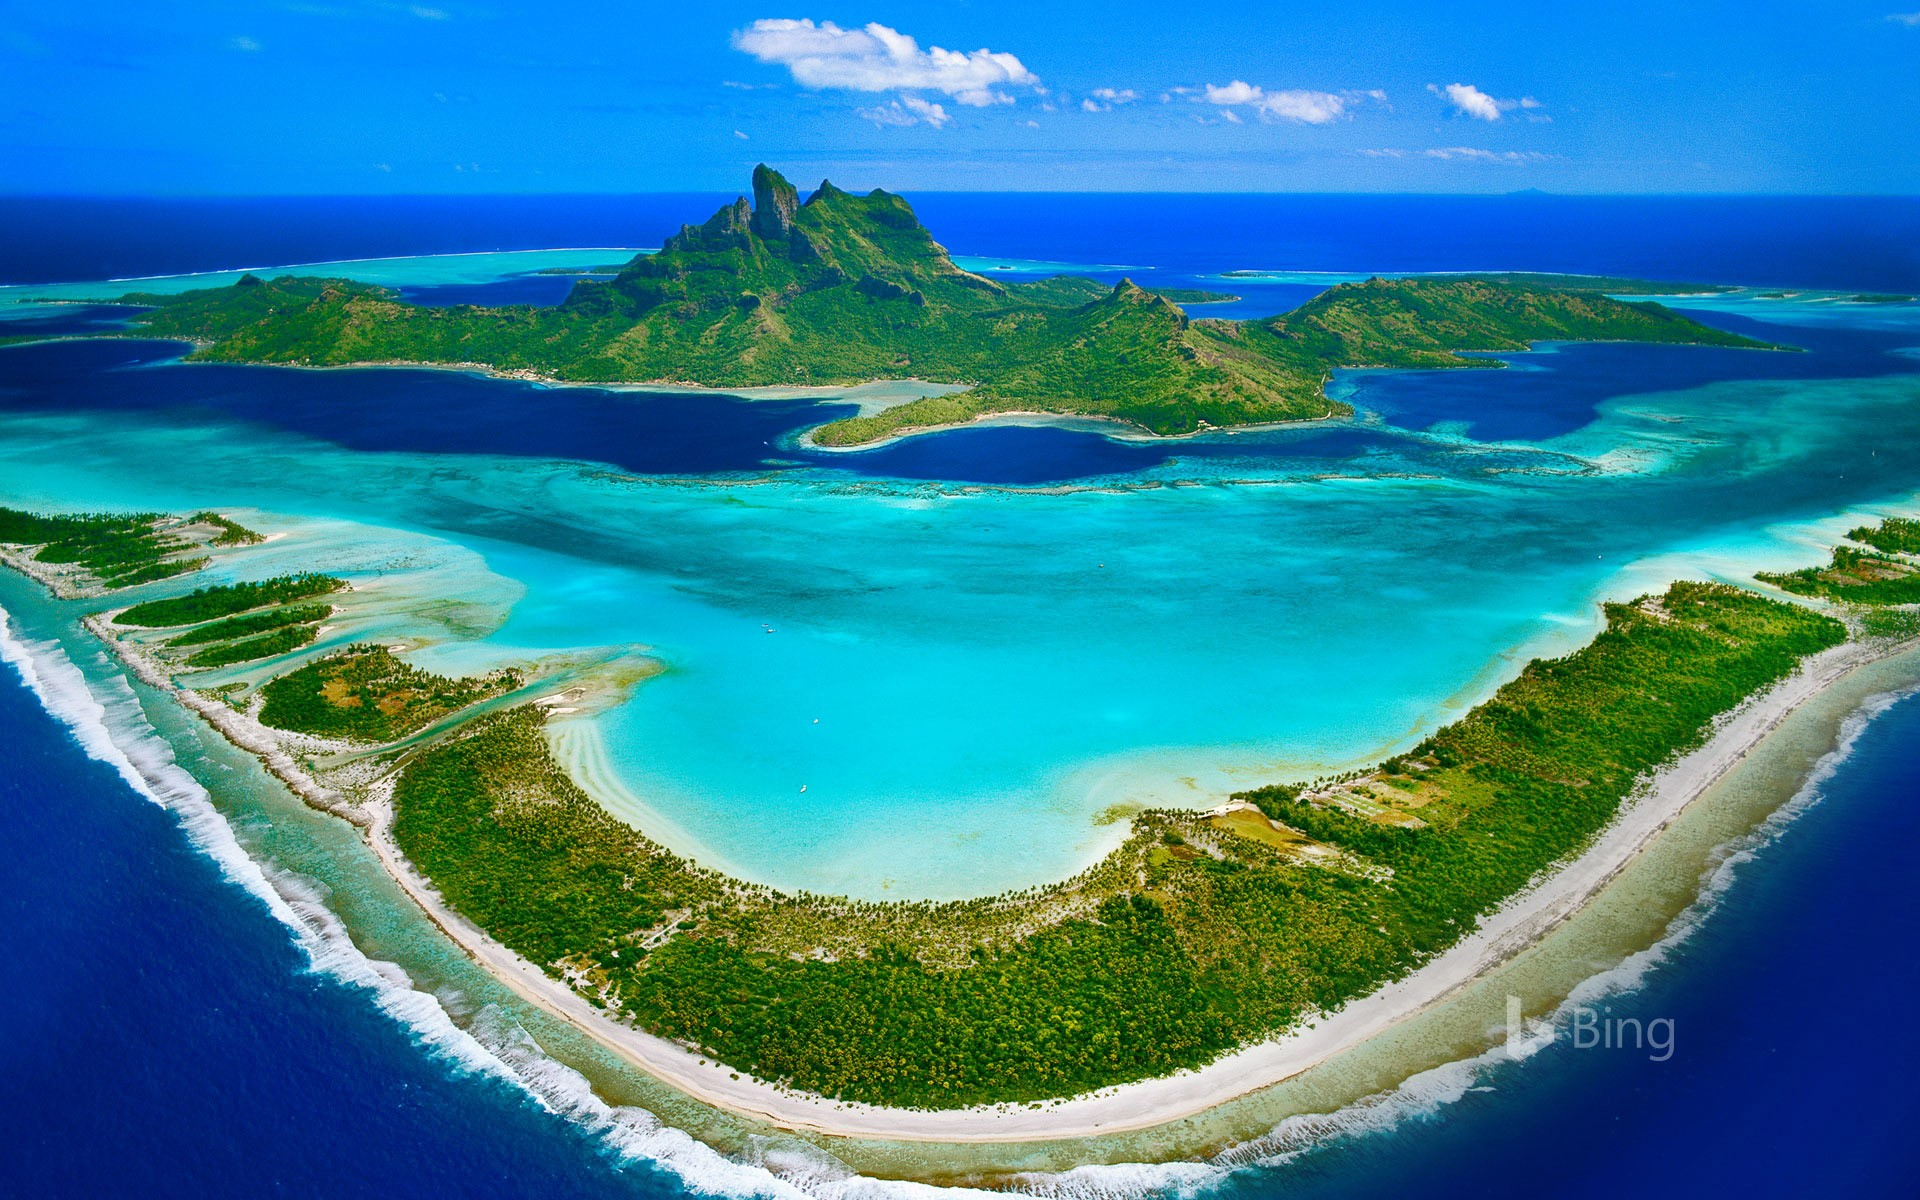 Bora Bora in the Leeward Islands of French Polynesia